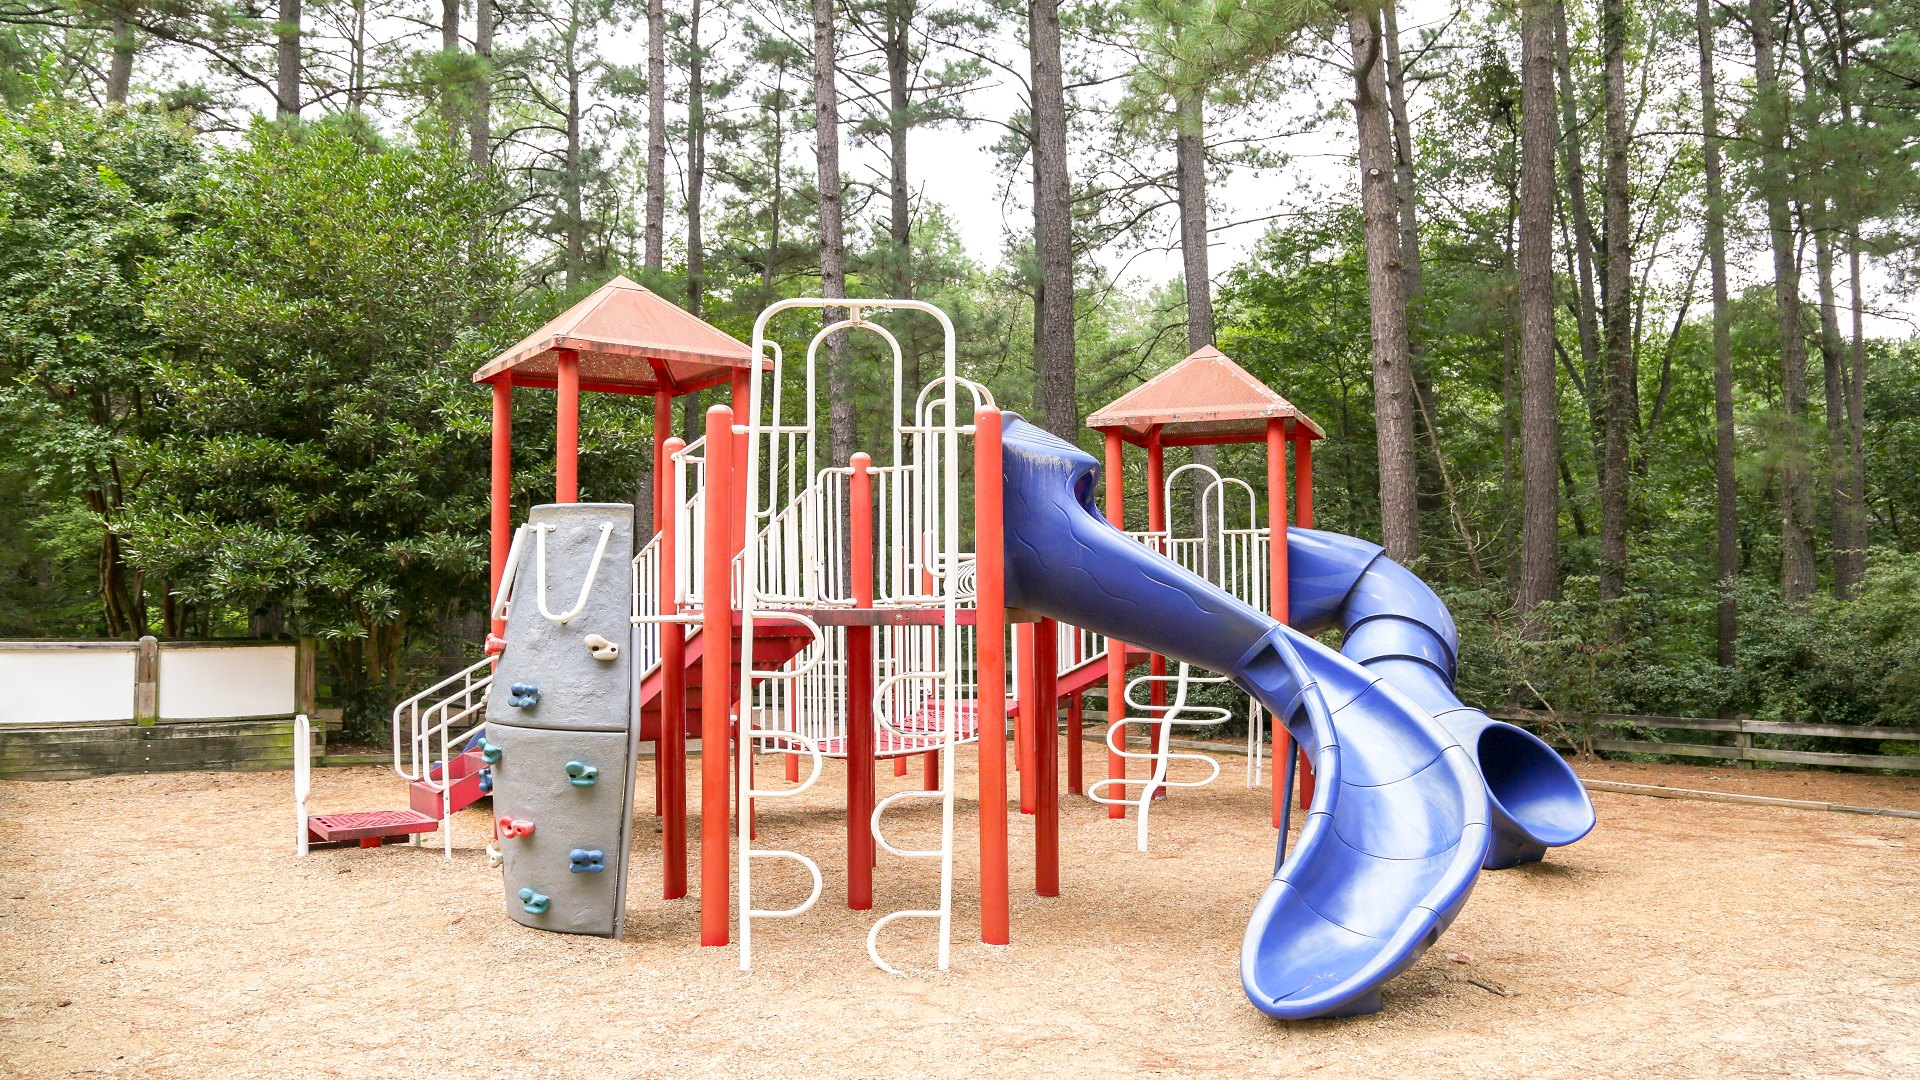 A second large playground for older kids with a bigger slide and climbing equipment